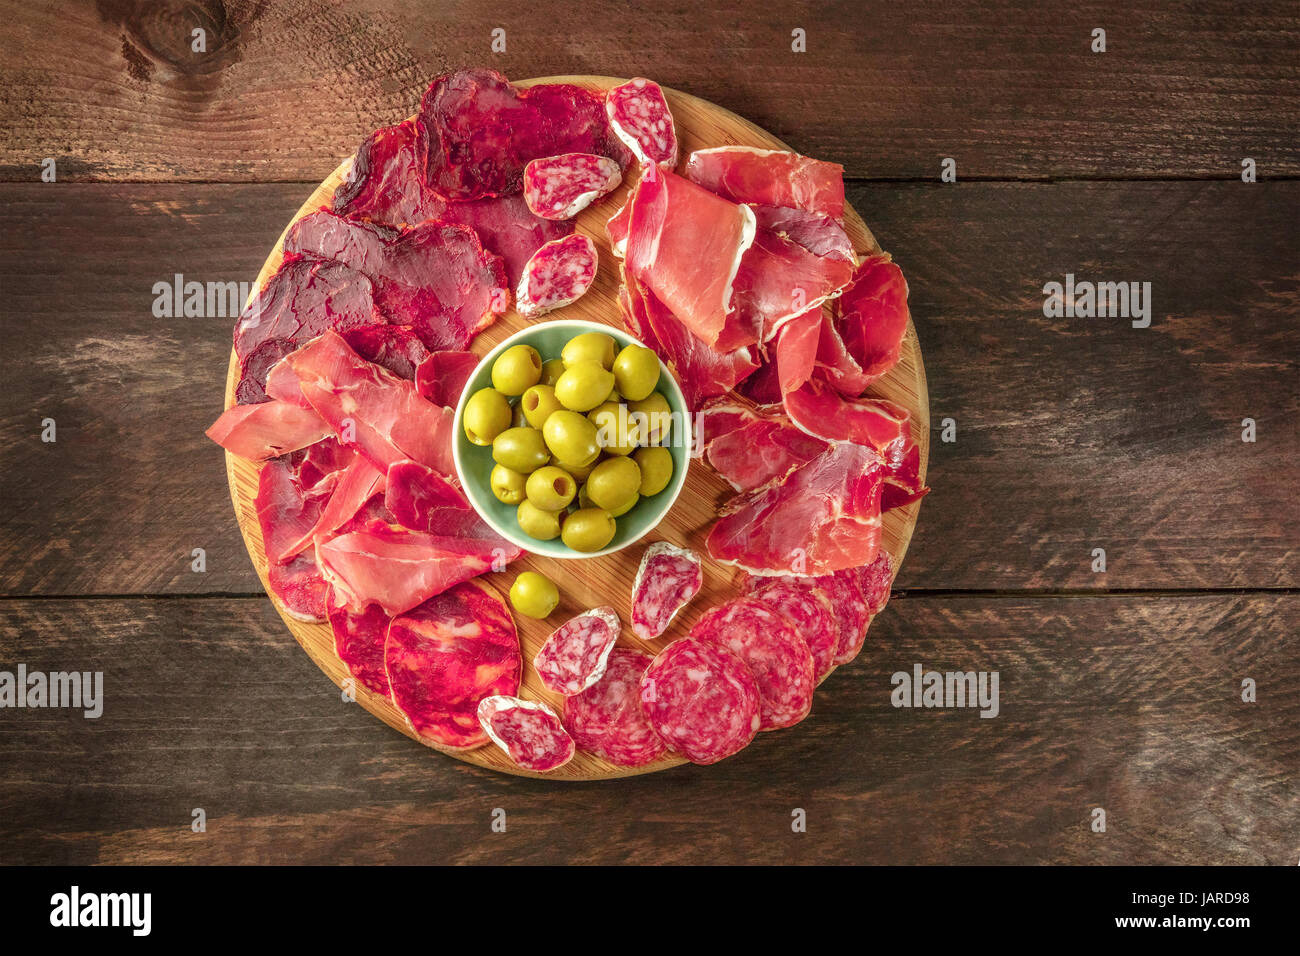 An overhead photo of a Spanish cold meats platter with jamon and payes sausage, with green olives, on a dark rustic - Stock Image